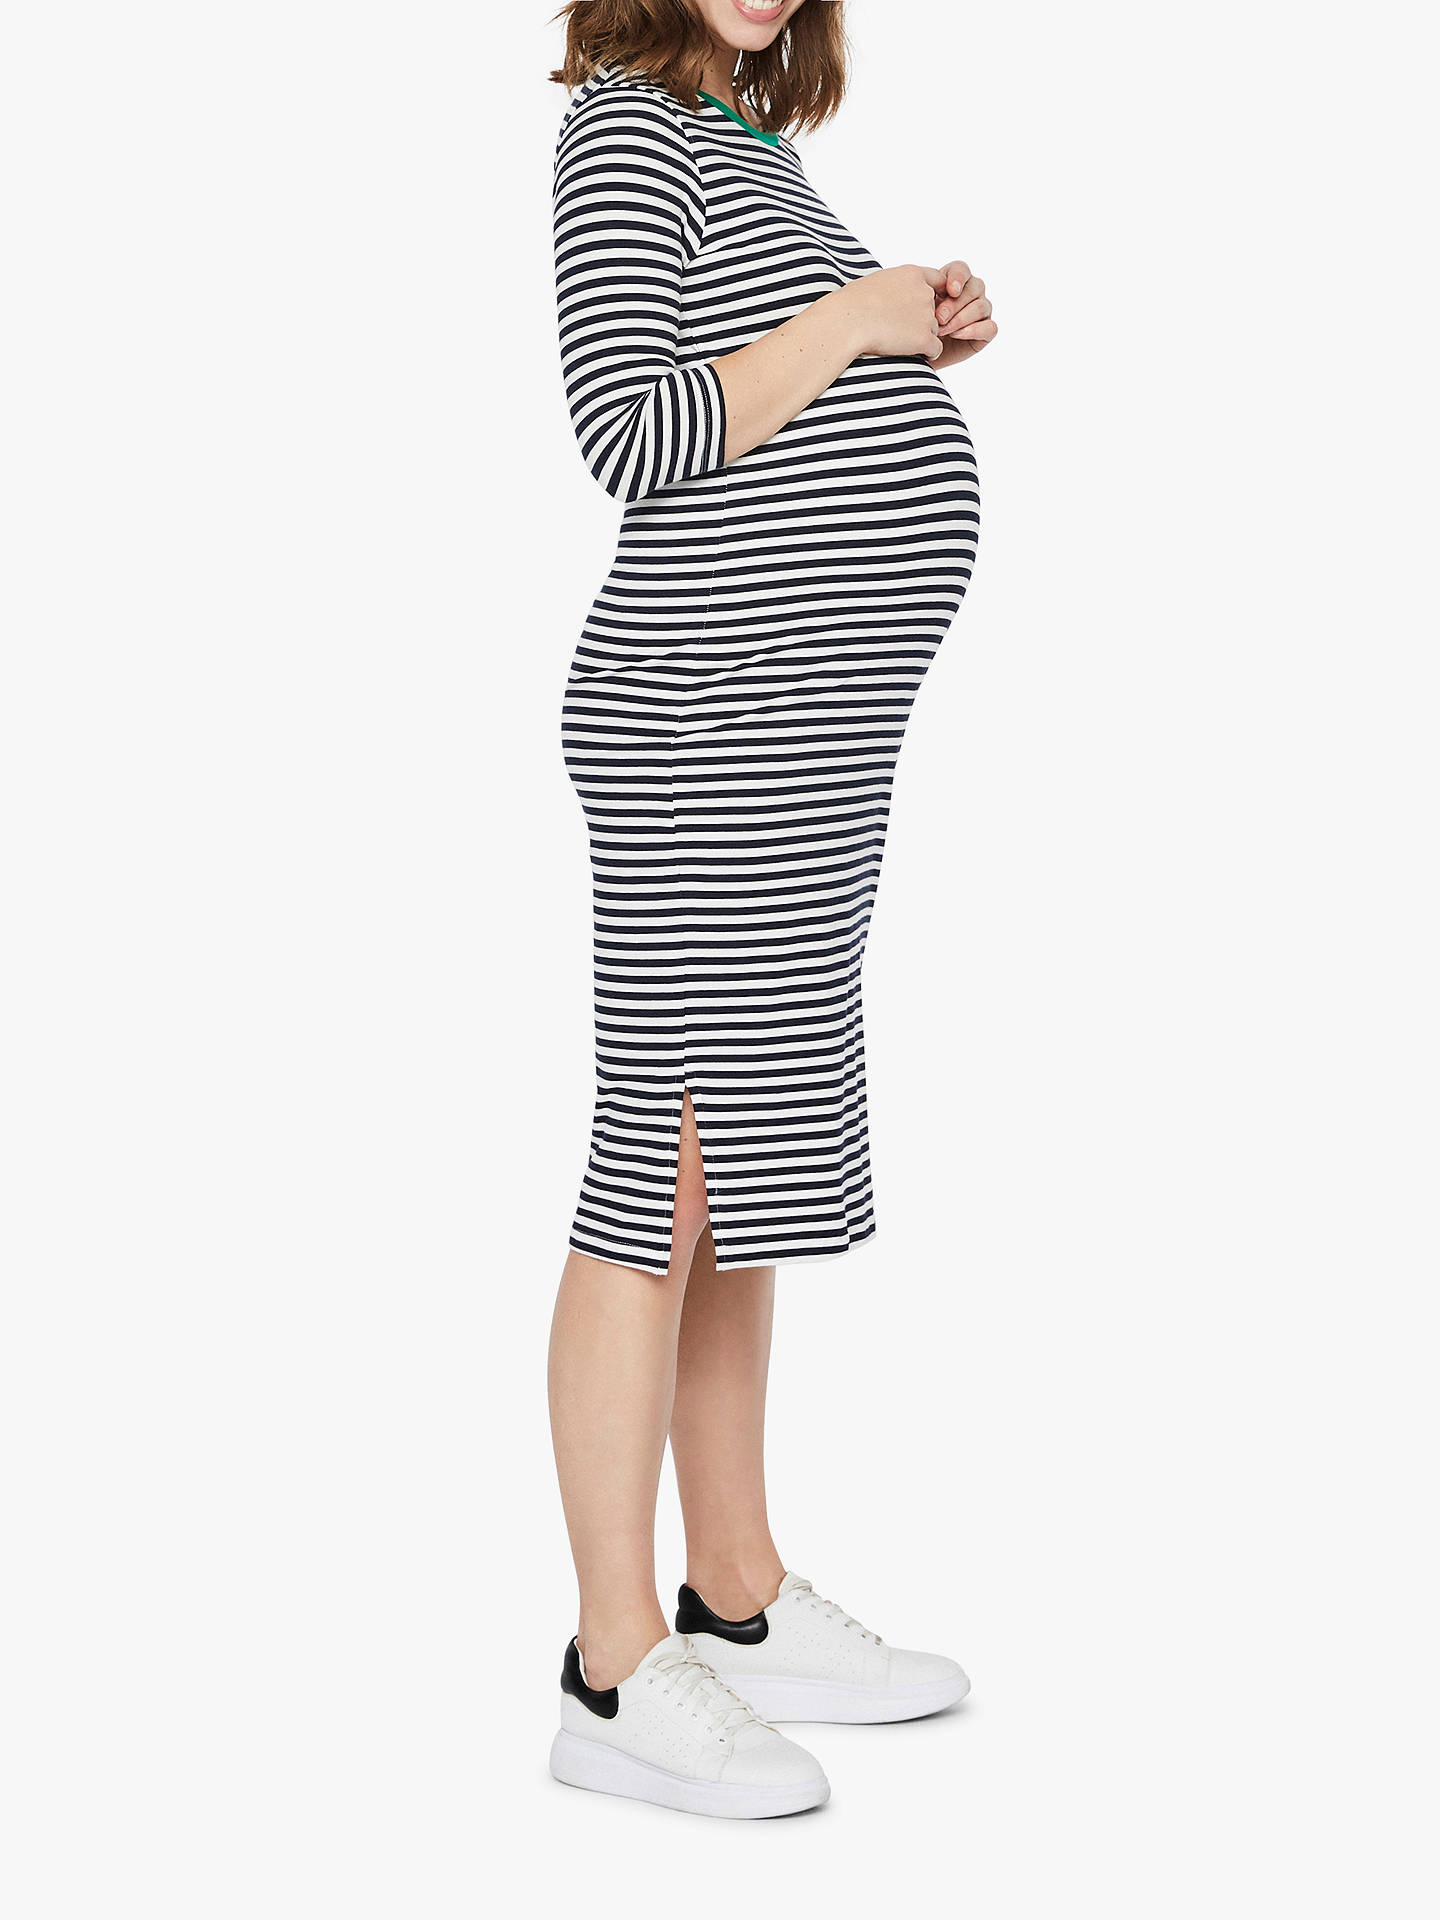 f3b1739a90345 Buy Mamalicious Gina Striped Jersey Maternity Dress, Navy, L Online at  johnlewis.com ...